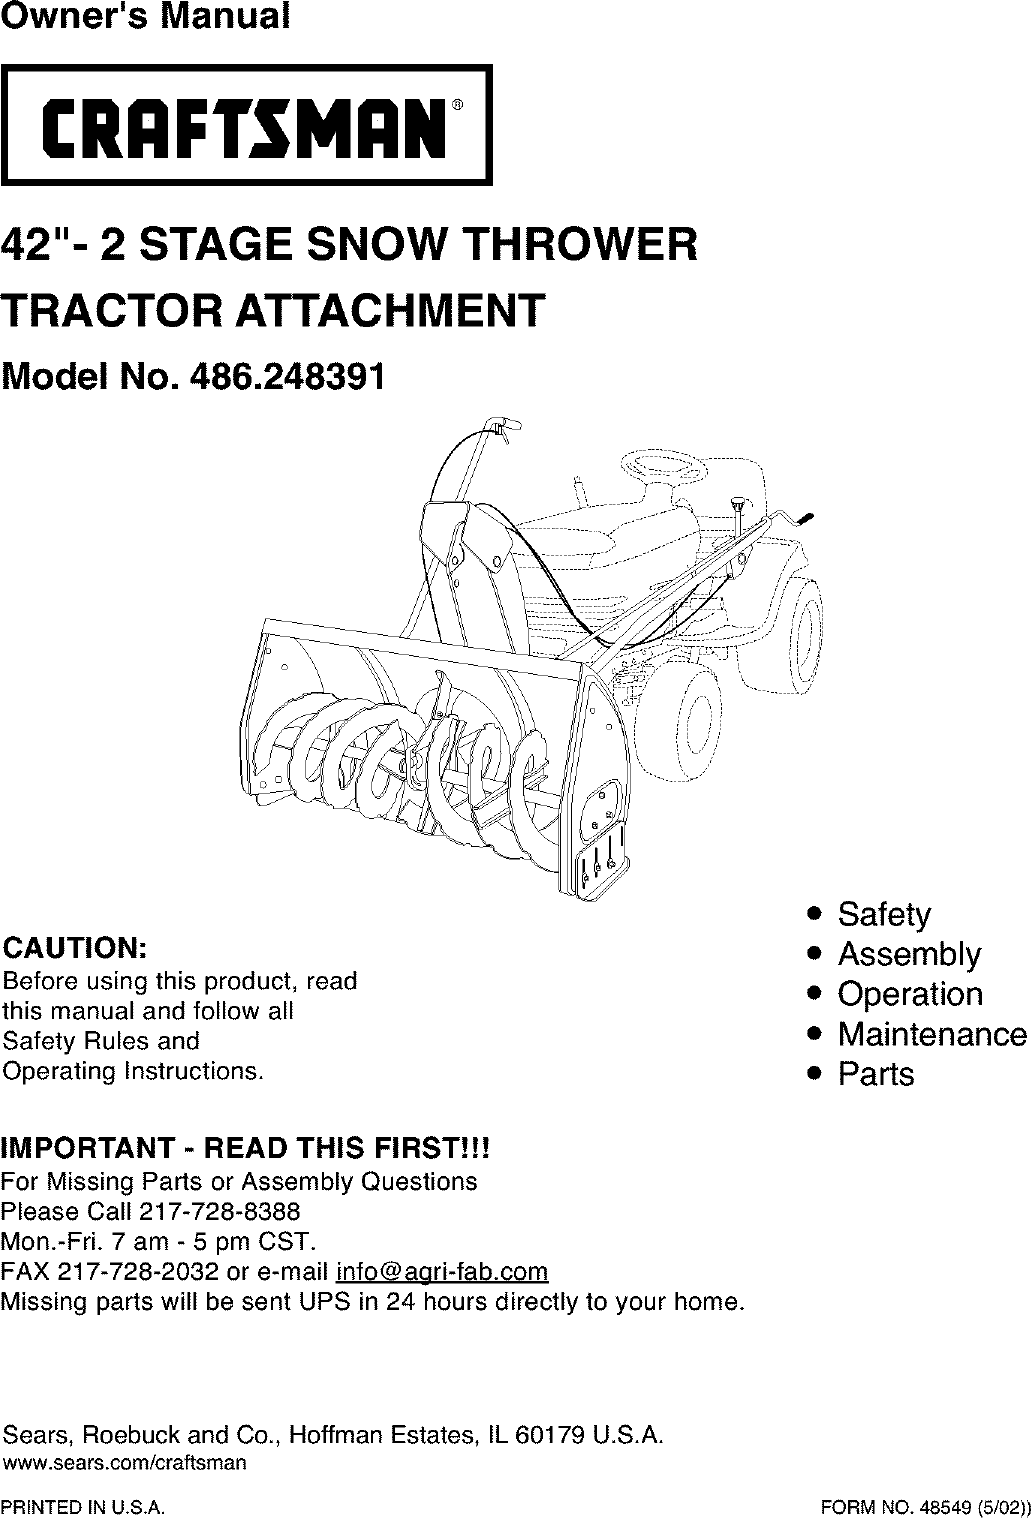 Craftsman snowblower attachment user manuals user manuals array craftsman 486248391 user manual snow thrower attachment manuals and rh usermanual wiki fandeluxe Image collections